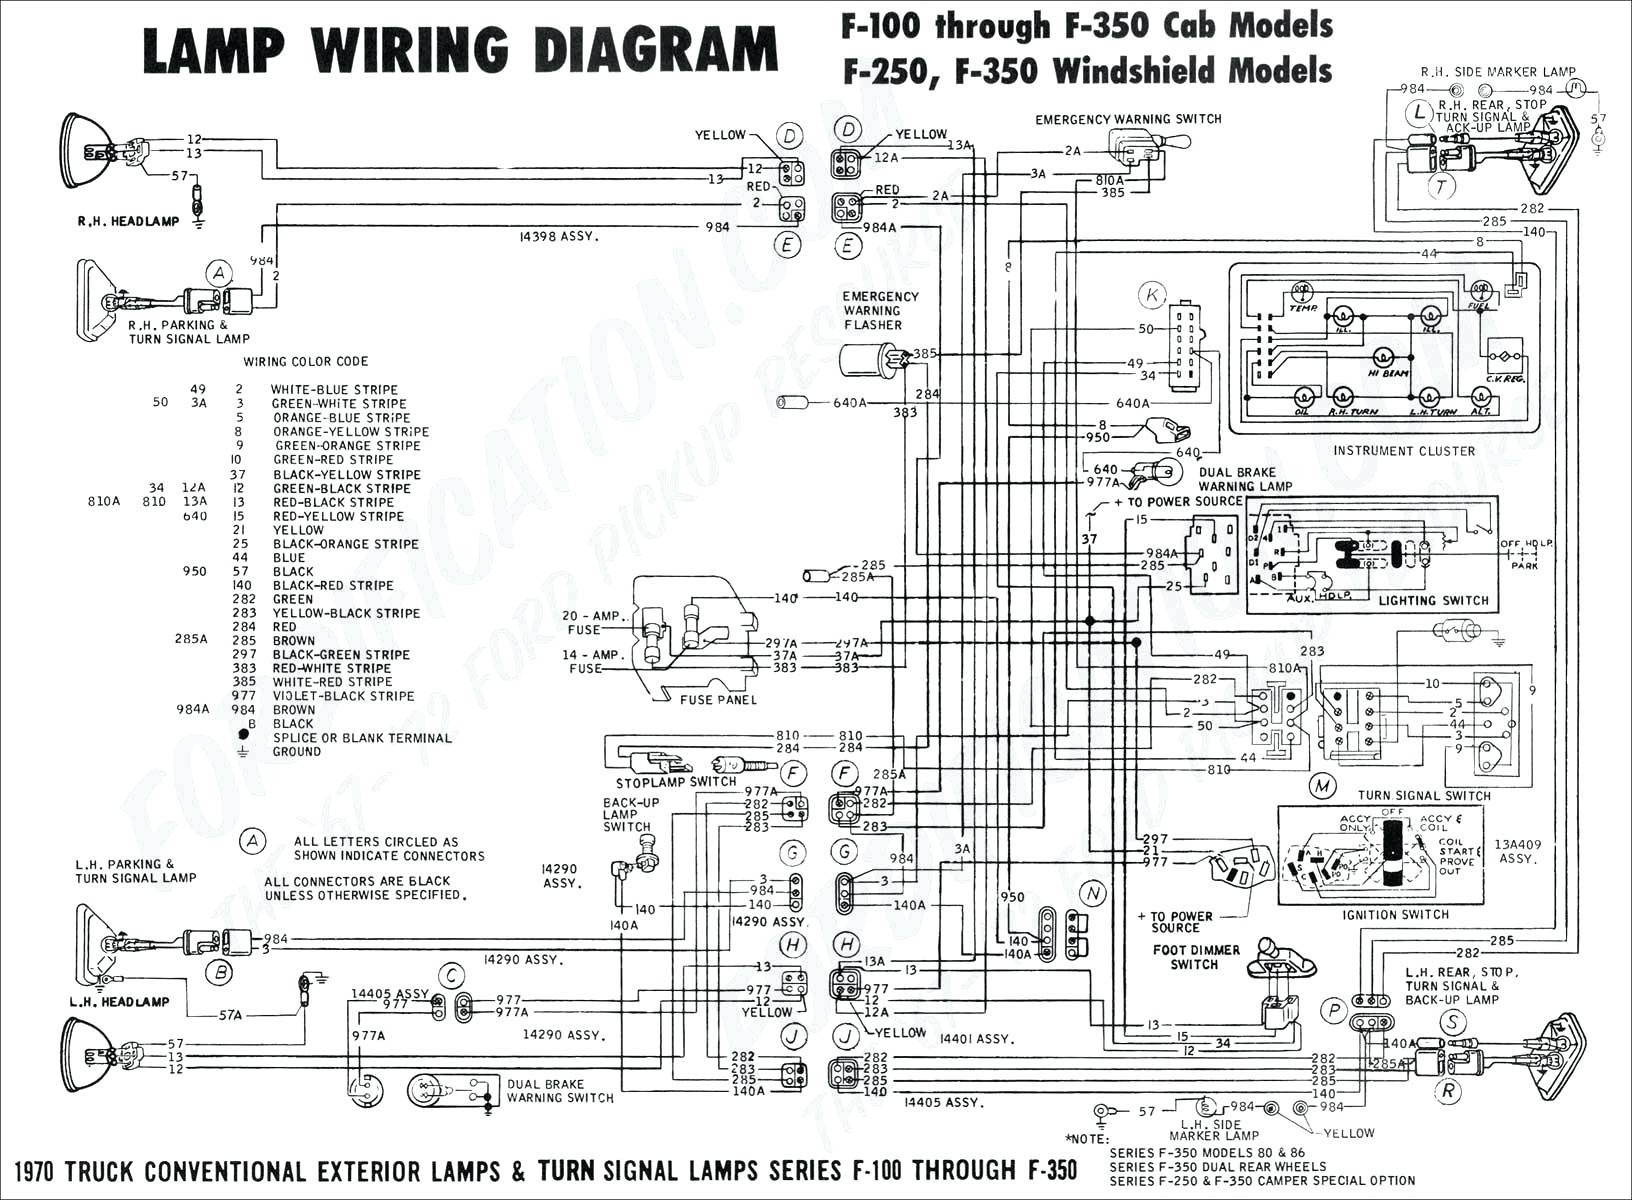 Diagram 2011 F450 Wiring Diagram Full Version Hd Quality Wiring Diagram Pdfxlutonr Scuoladipace It